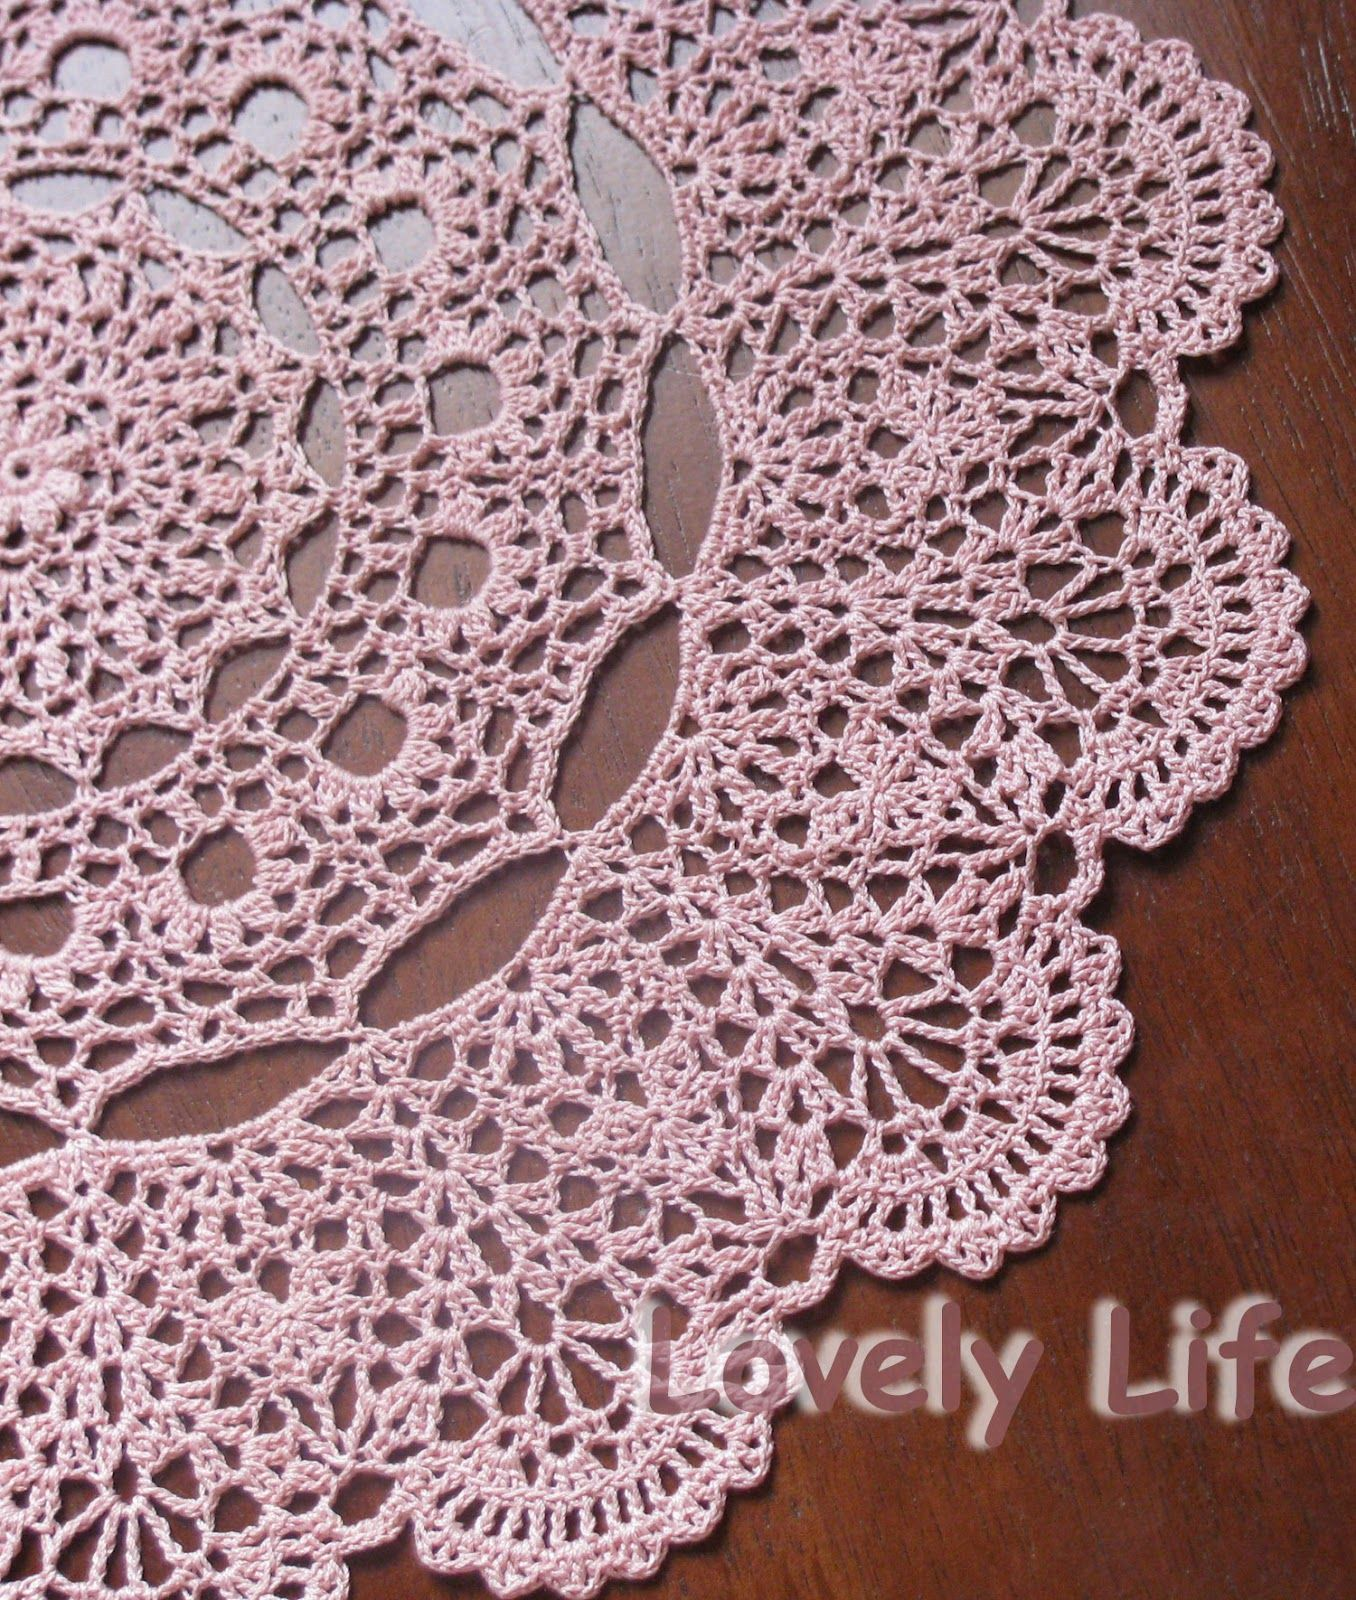 Free Online Printable Crochet Patterns : Free Printable Crochet Doily Patterns Mantilla Doily ...